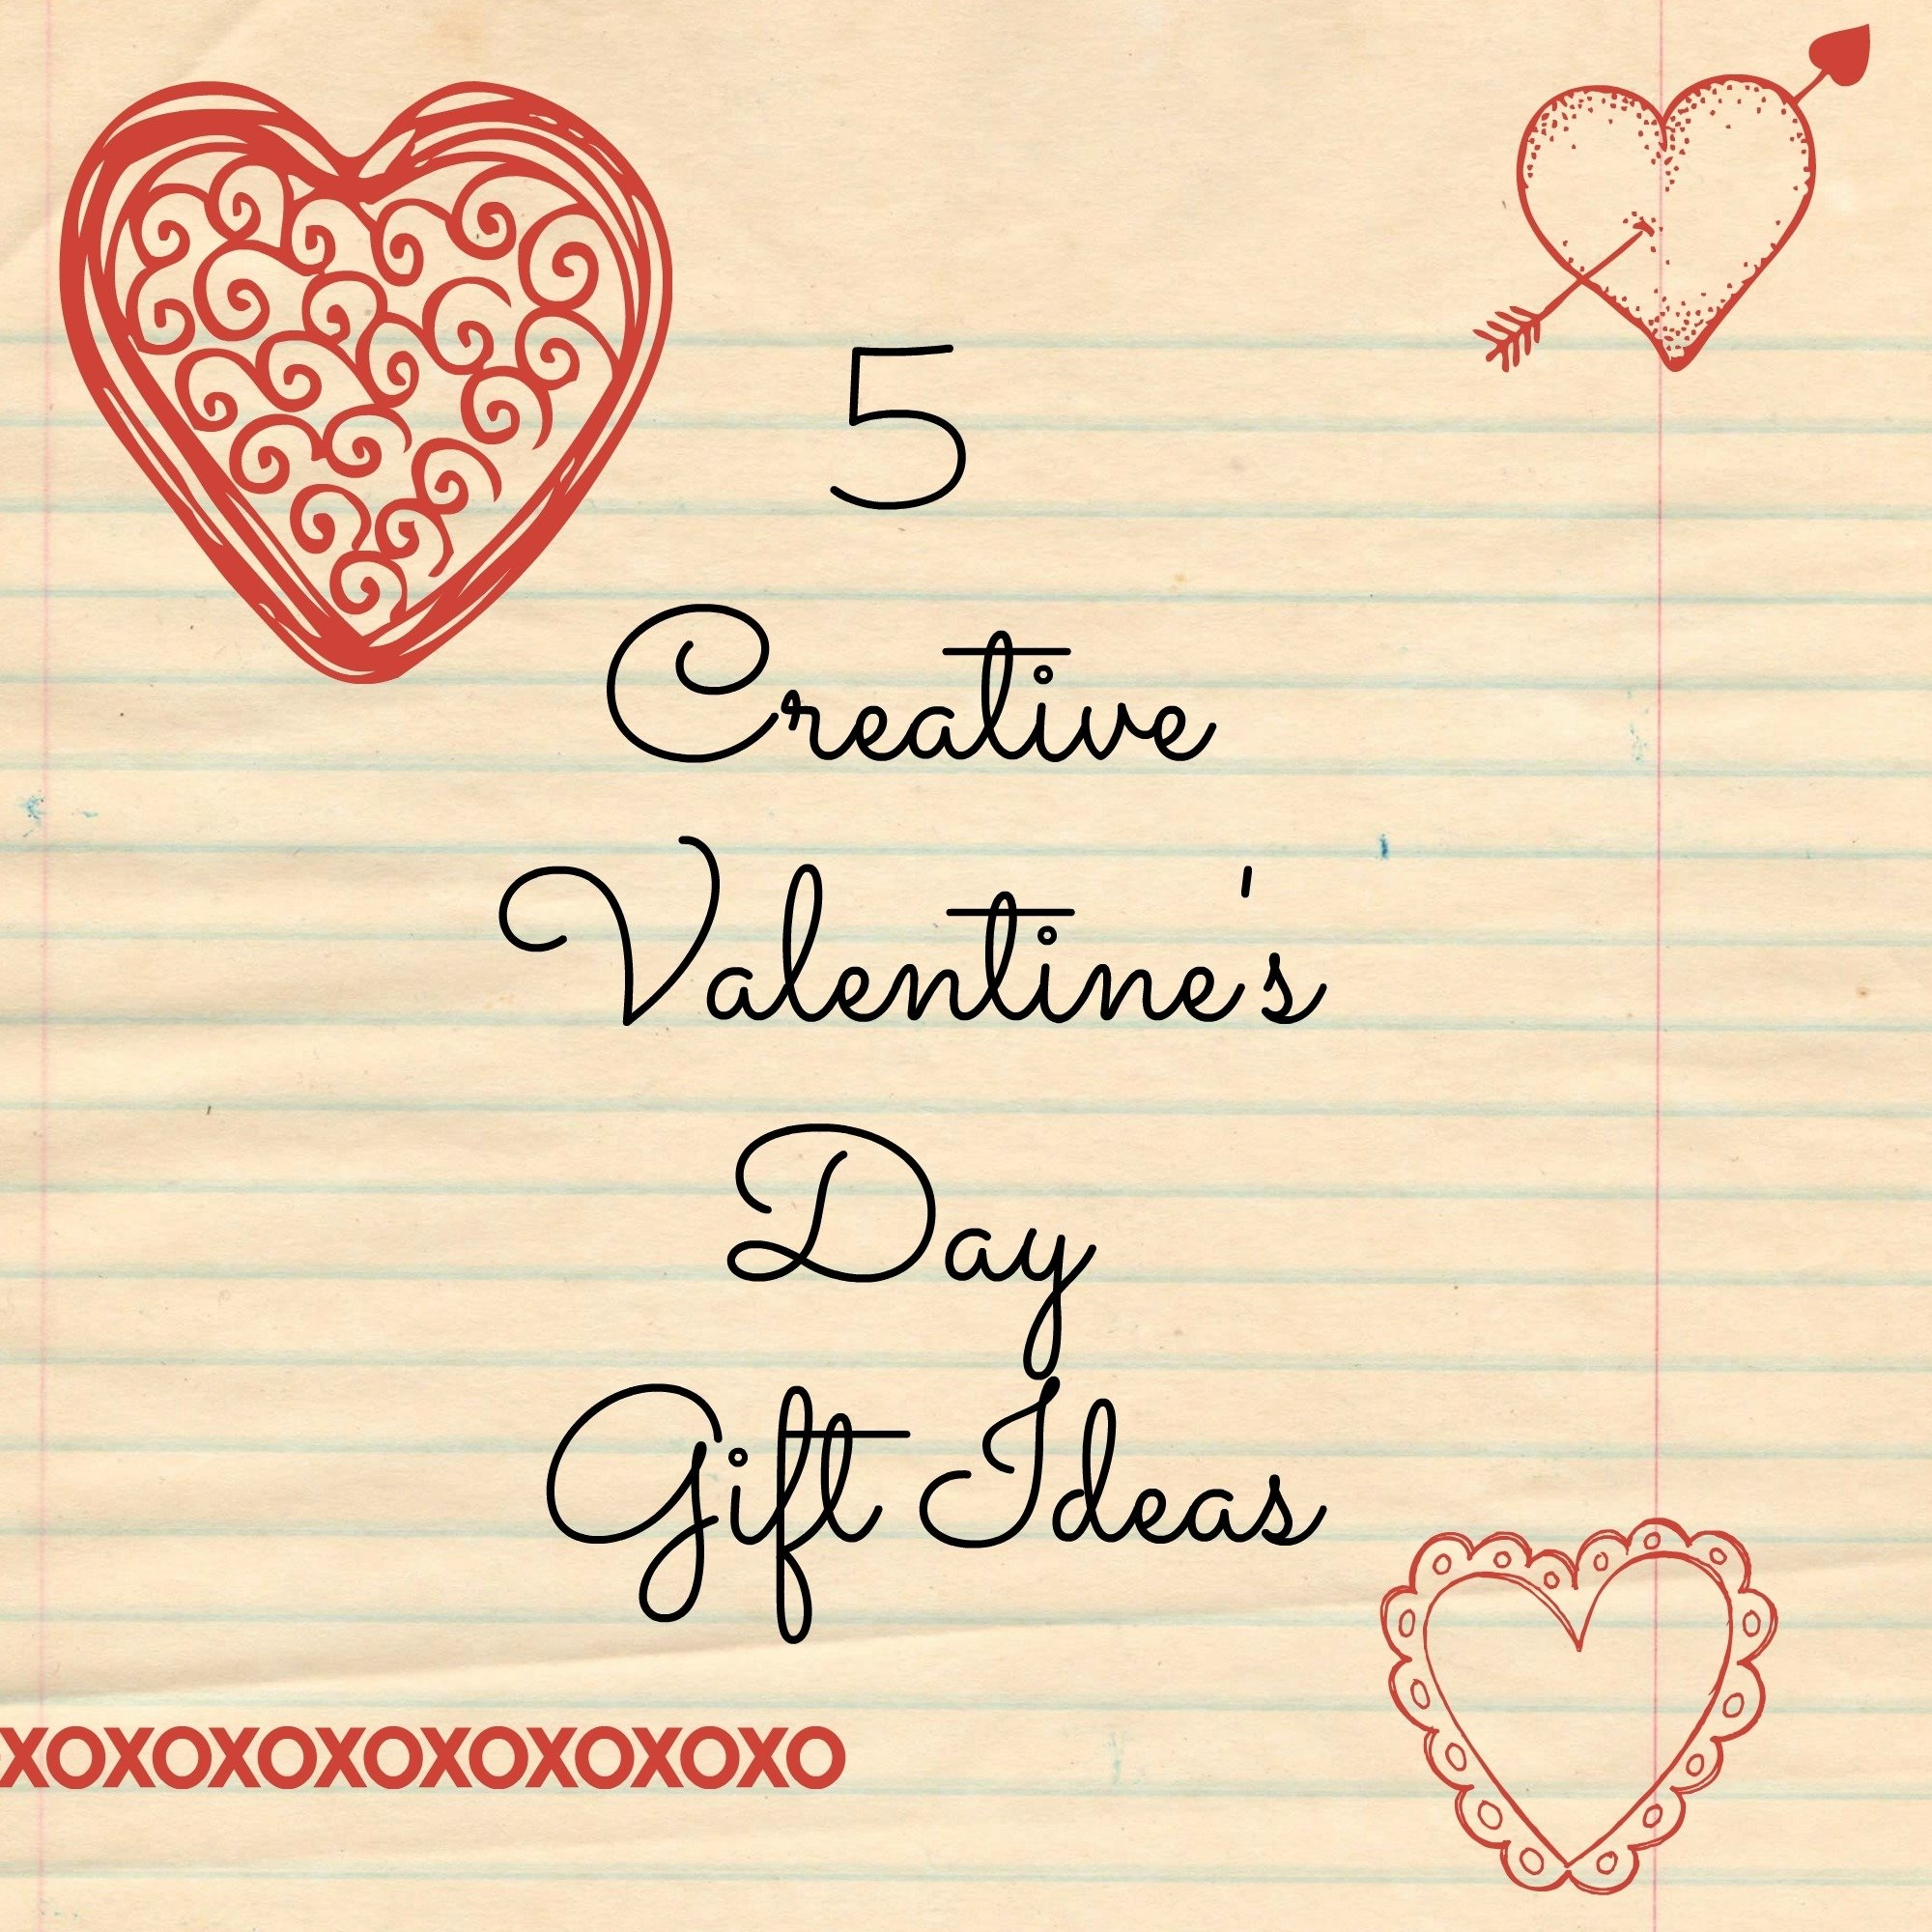 10 Trendy Cute Valentines Day Ideas For Husband husband valentines day gift startupcorner co 2020